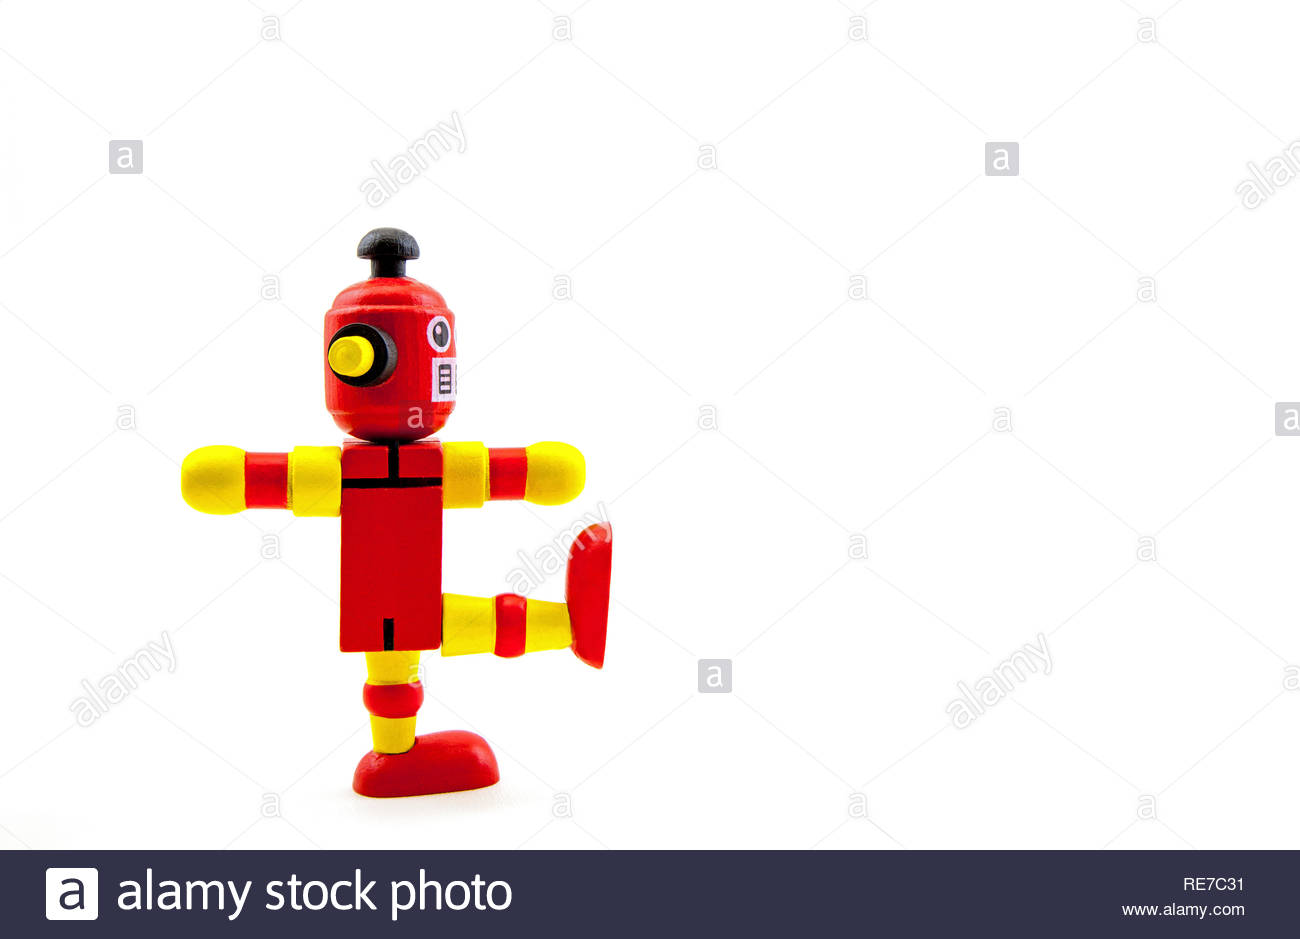 A red / yellow wooden toy robot balancing on one leg as if marching from left to right. Concepts: humour, military, exercise, ahead. White copy space - Stock Image